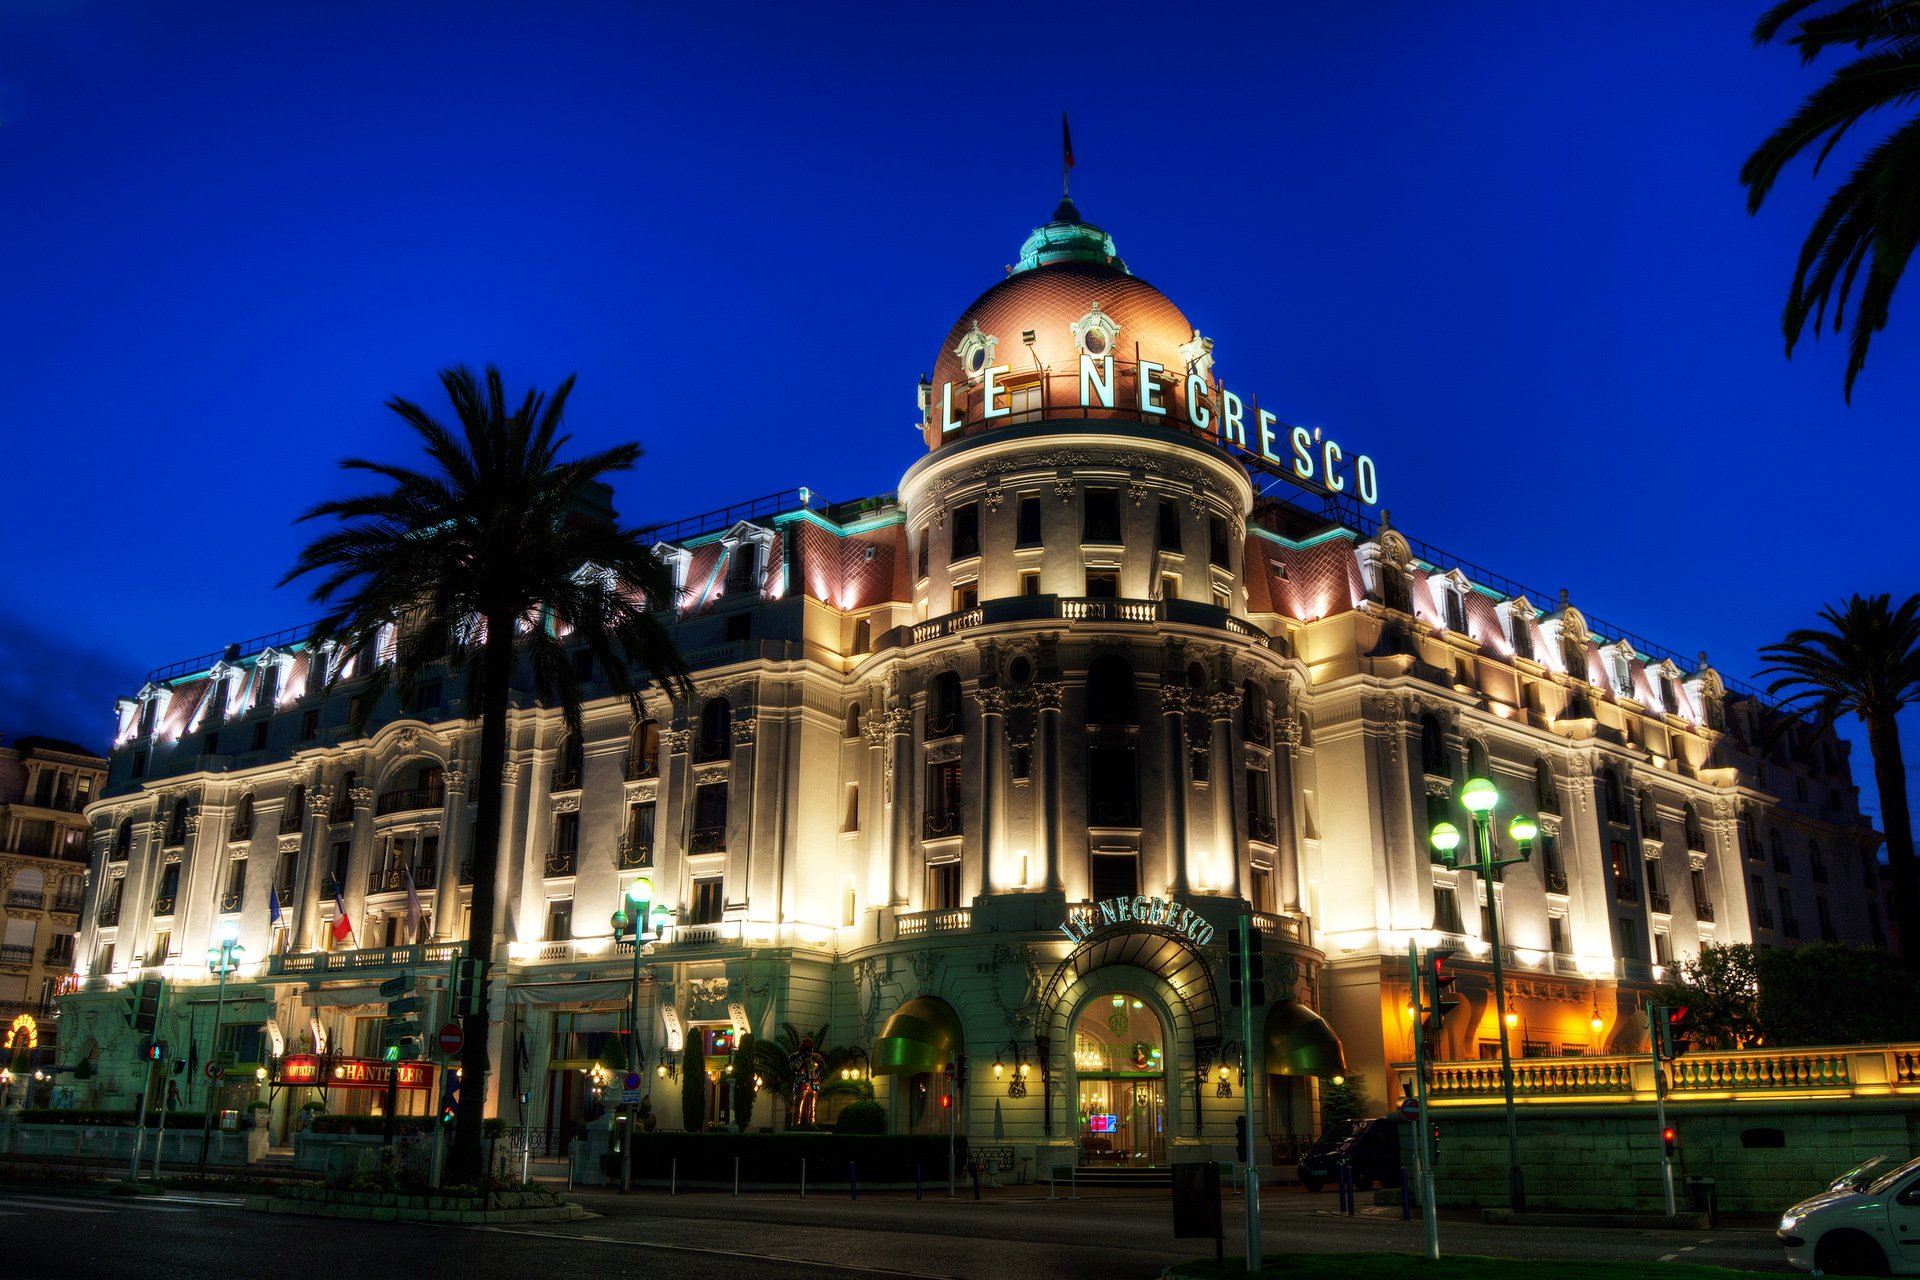 466187_france_night_city_hotel_negresco_otel_negresko_fra_1920x1280_(www.GdeFon.ru)